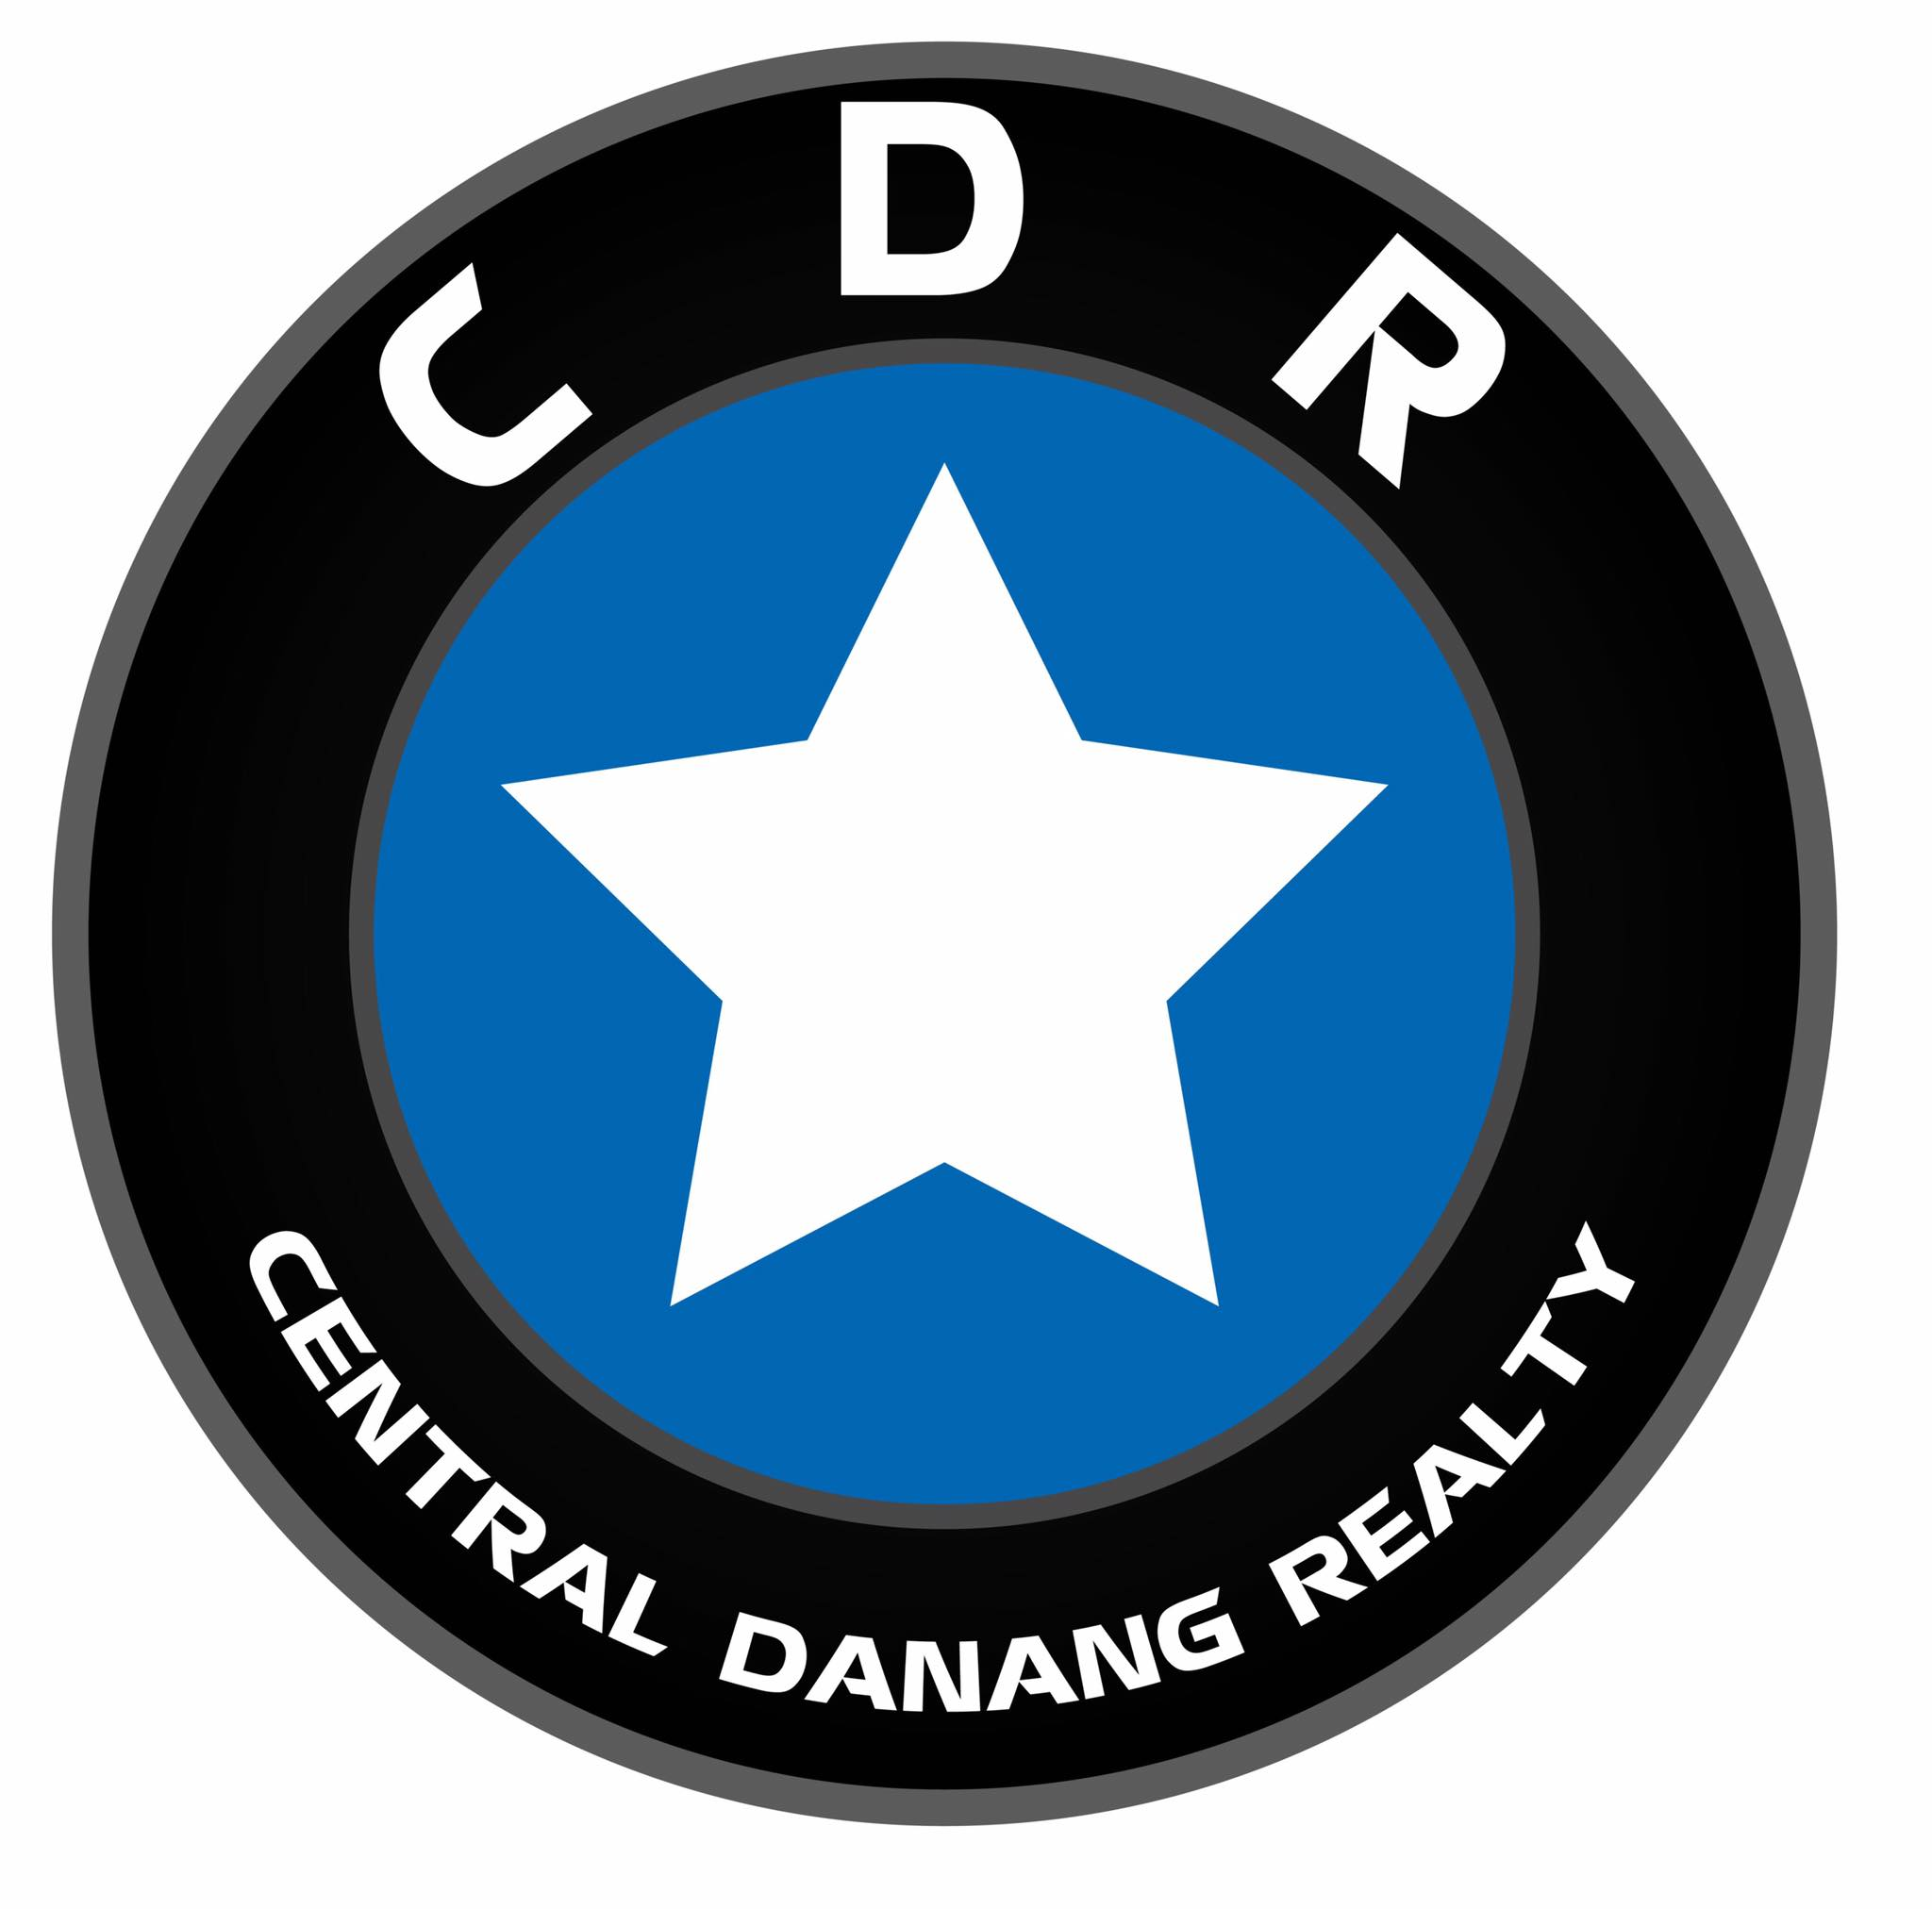 CDR Central Danang Realty